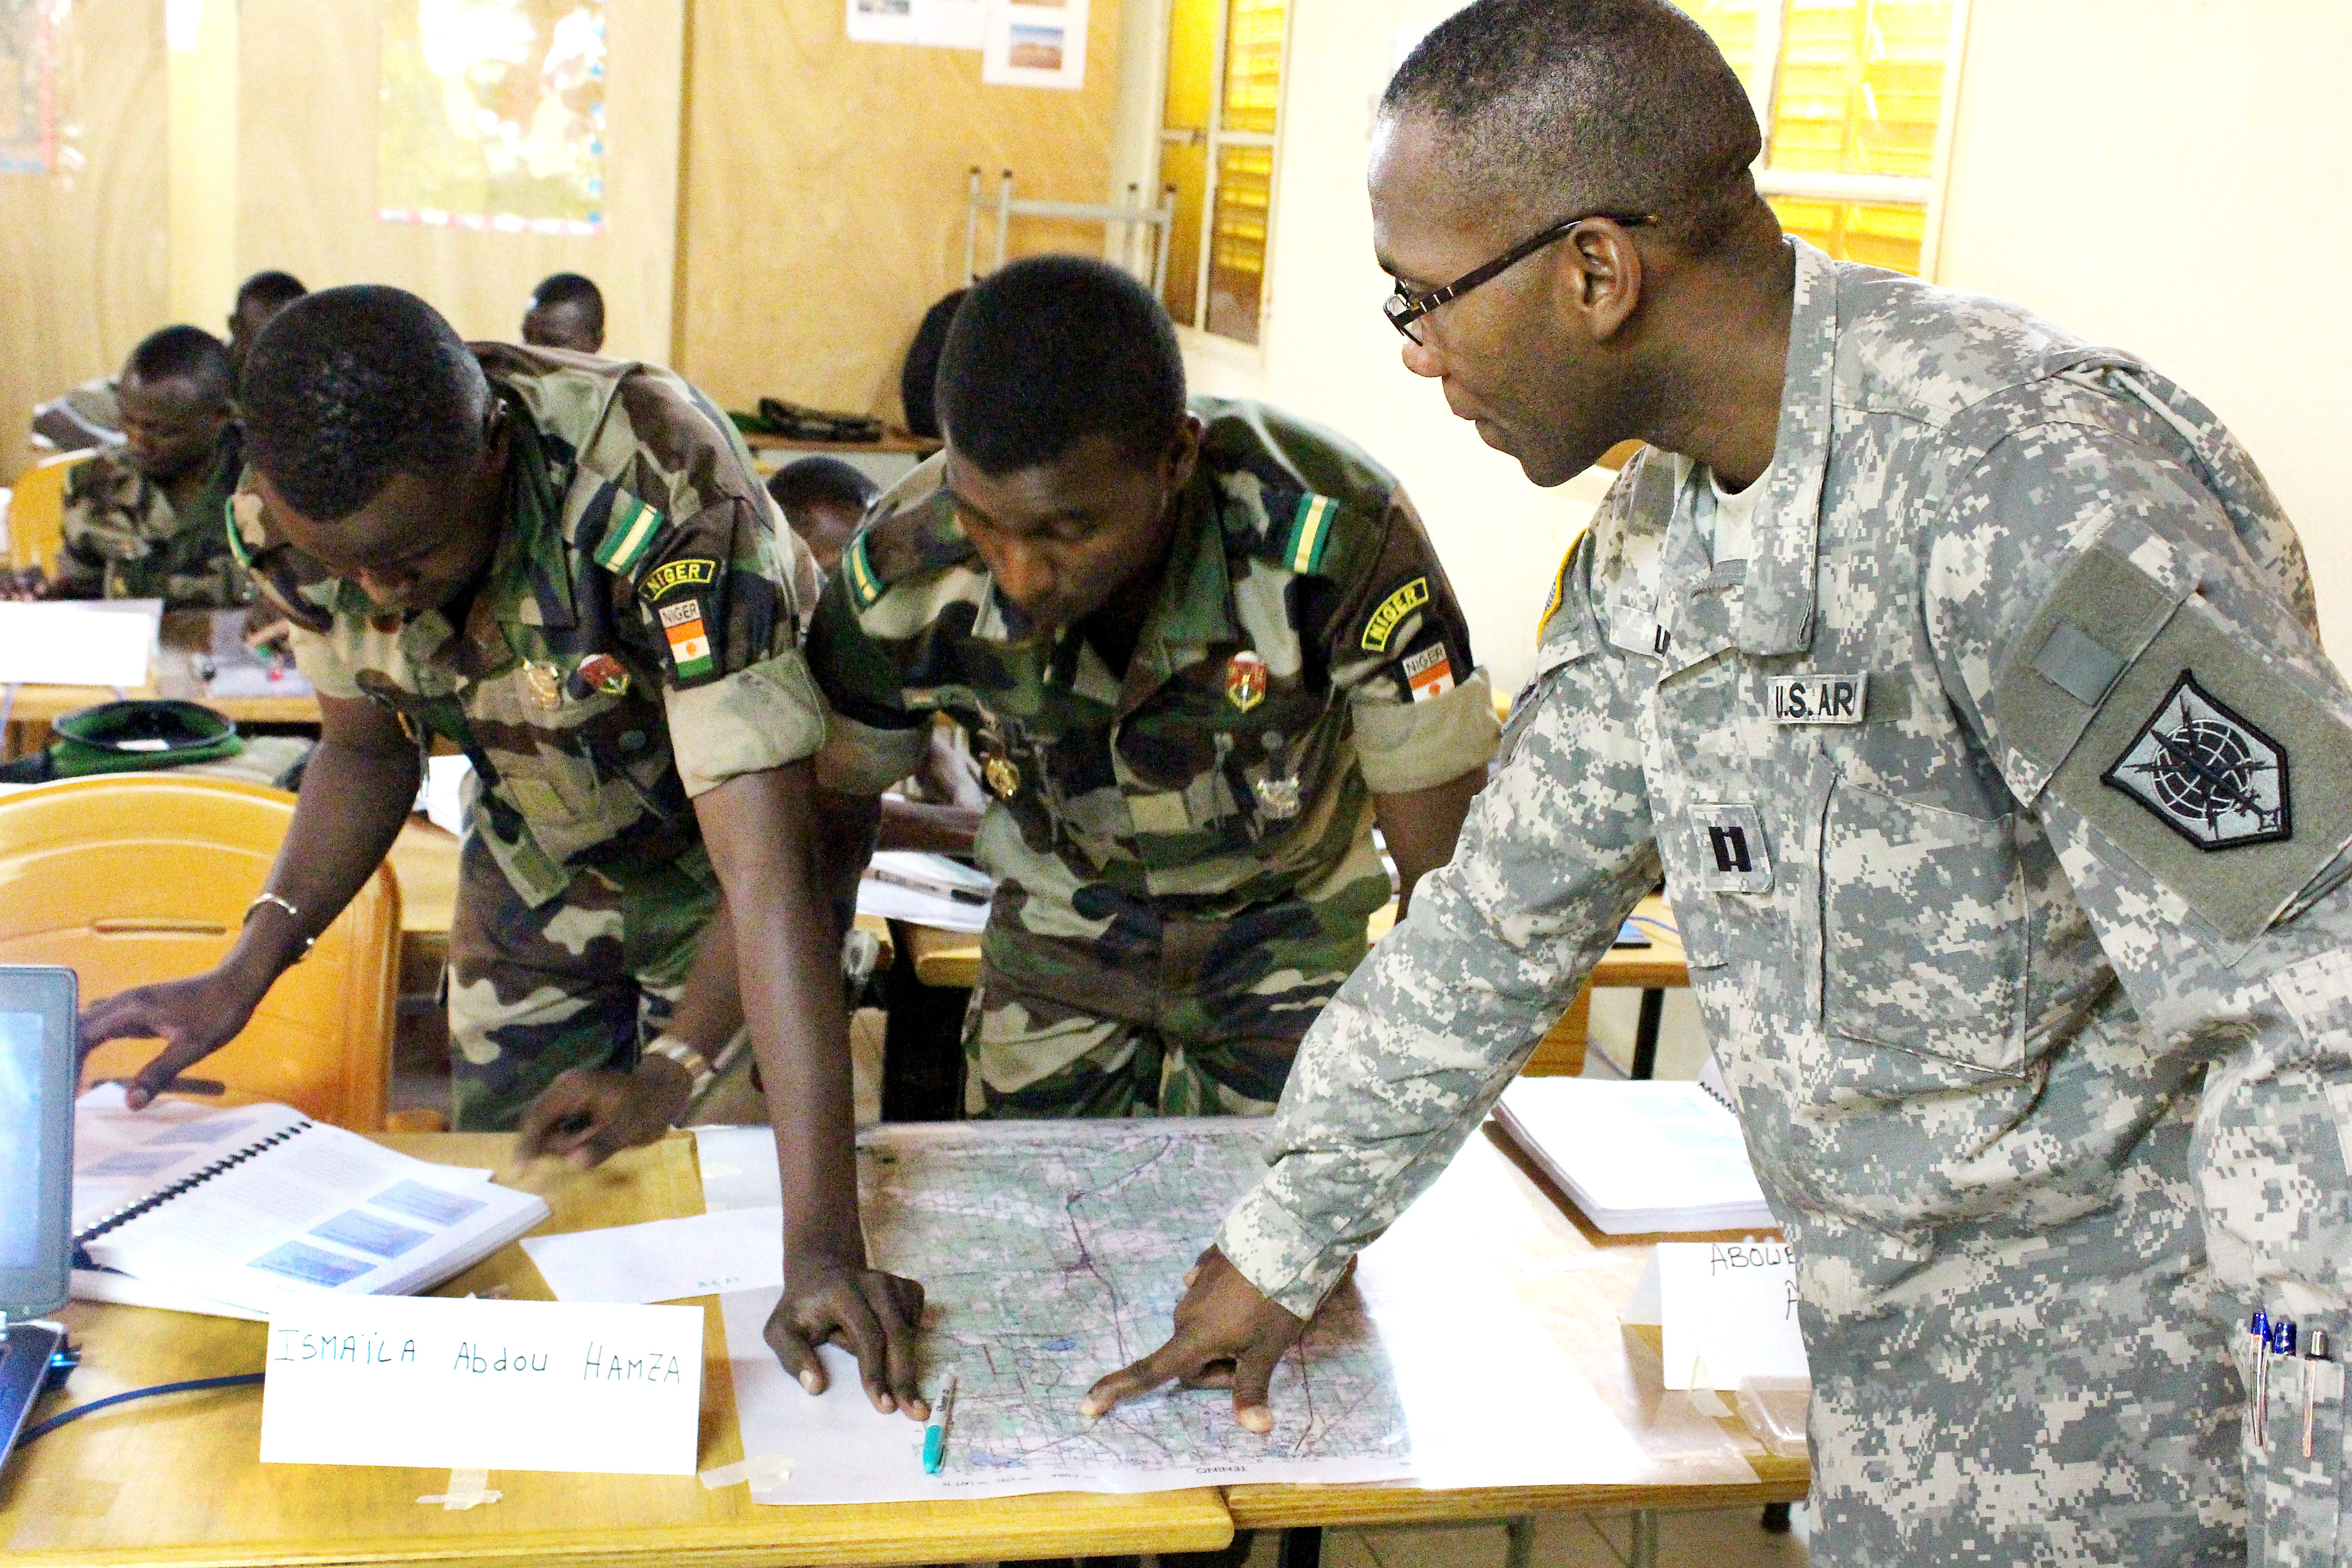 Nigerien Malian Soldiers Aid US Armys Languagetranslation - Us army map reading